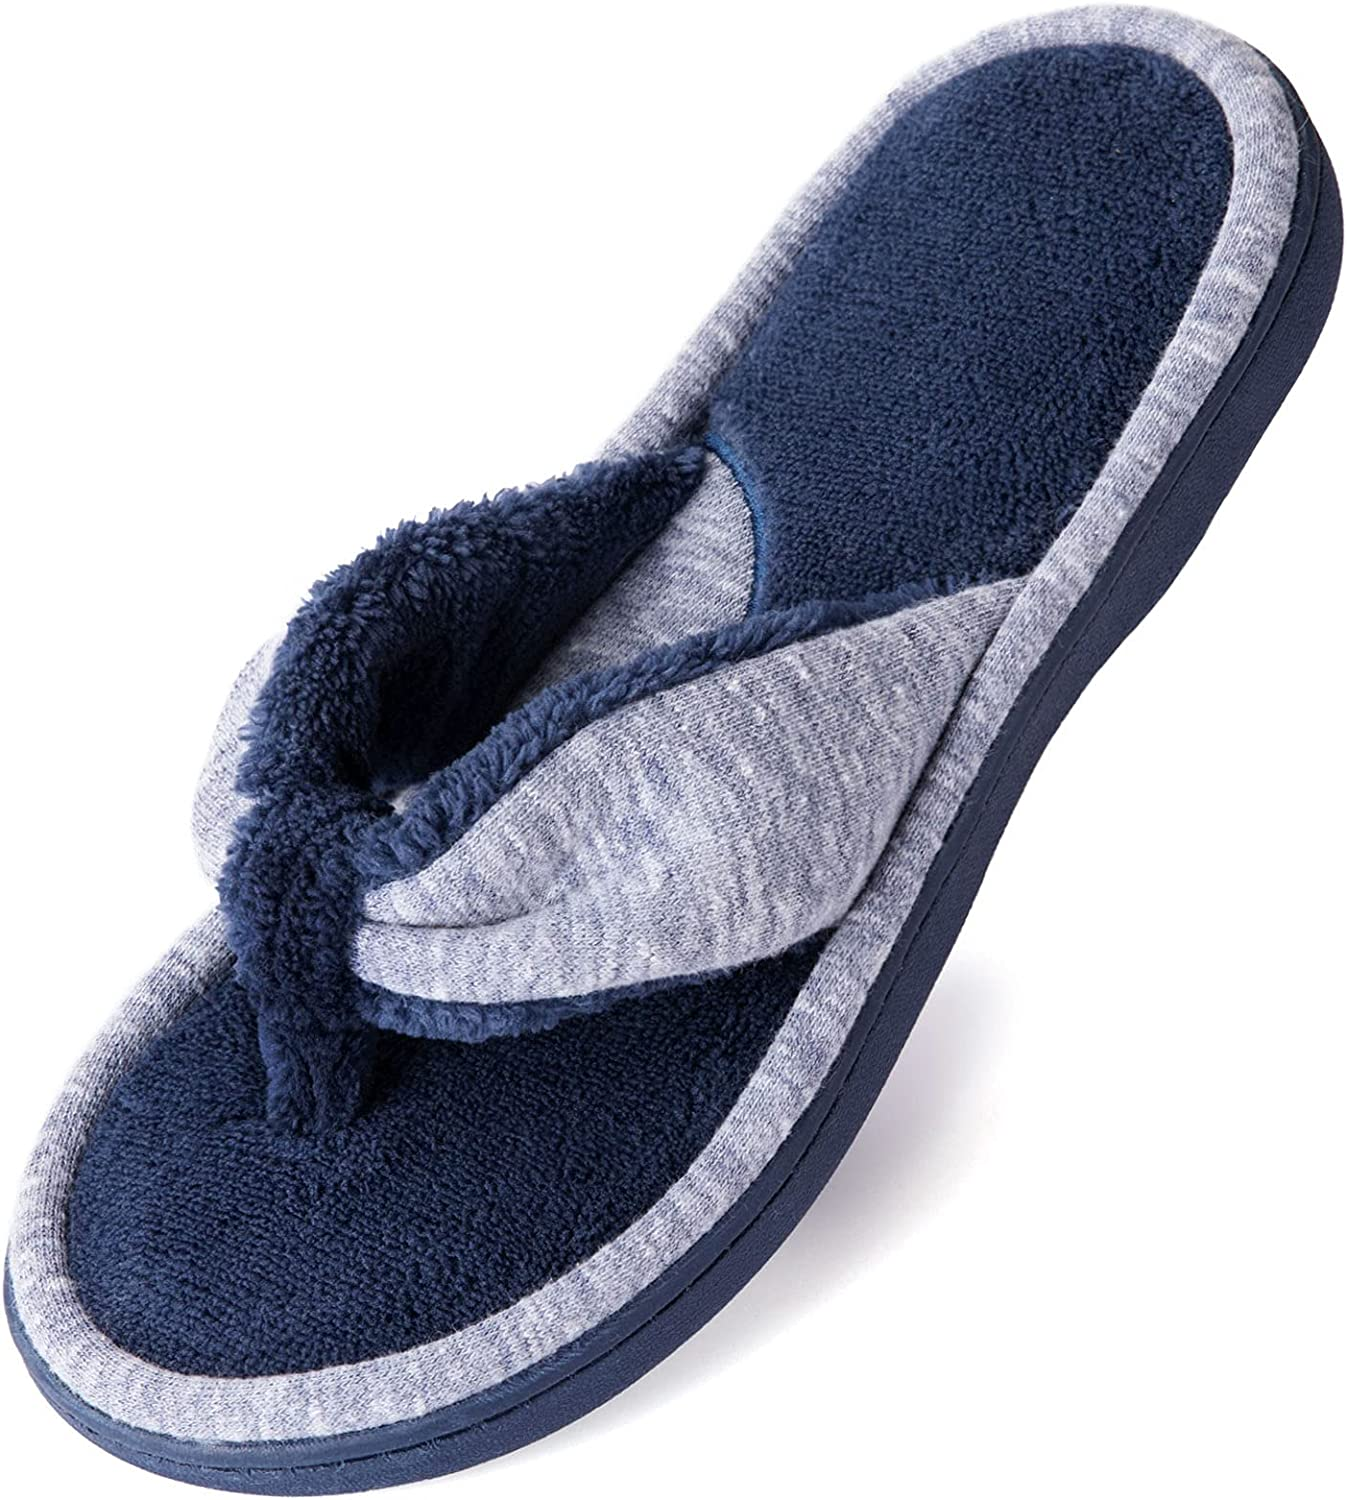 Wishcotton Women's Memory Foam Spa Thong Flip Flops Cozy House Indoor Slippers, Clog Style Lightweight Open Toe House Shoes